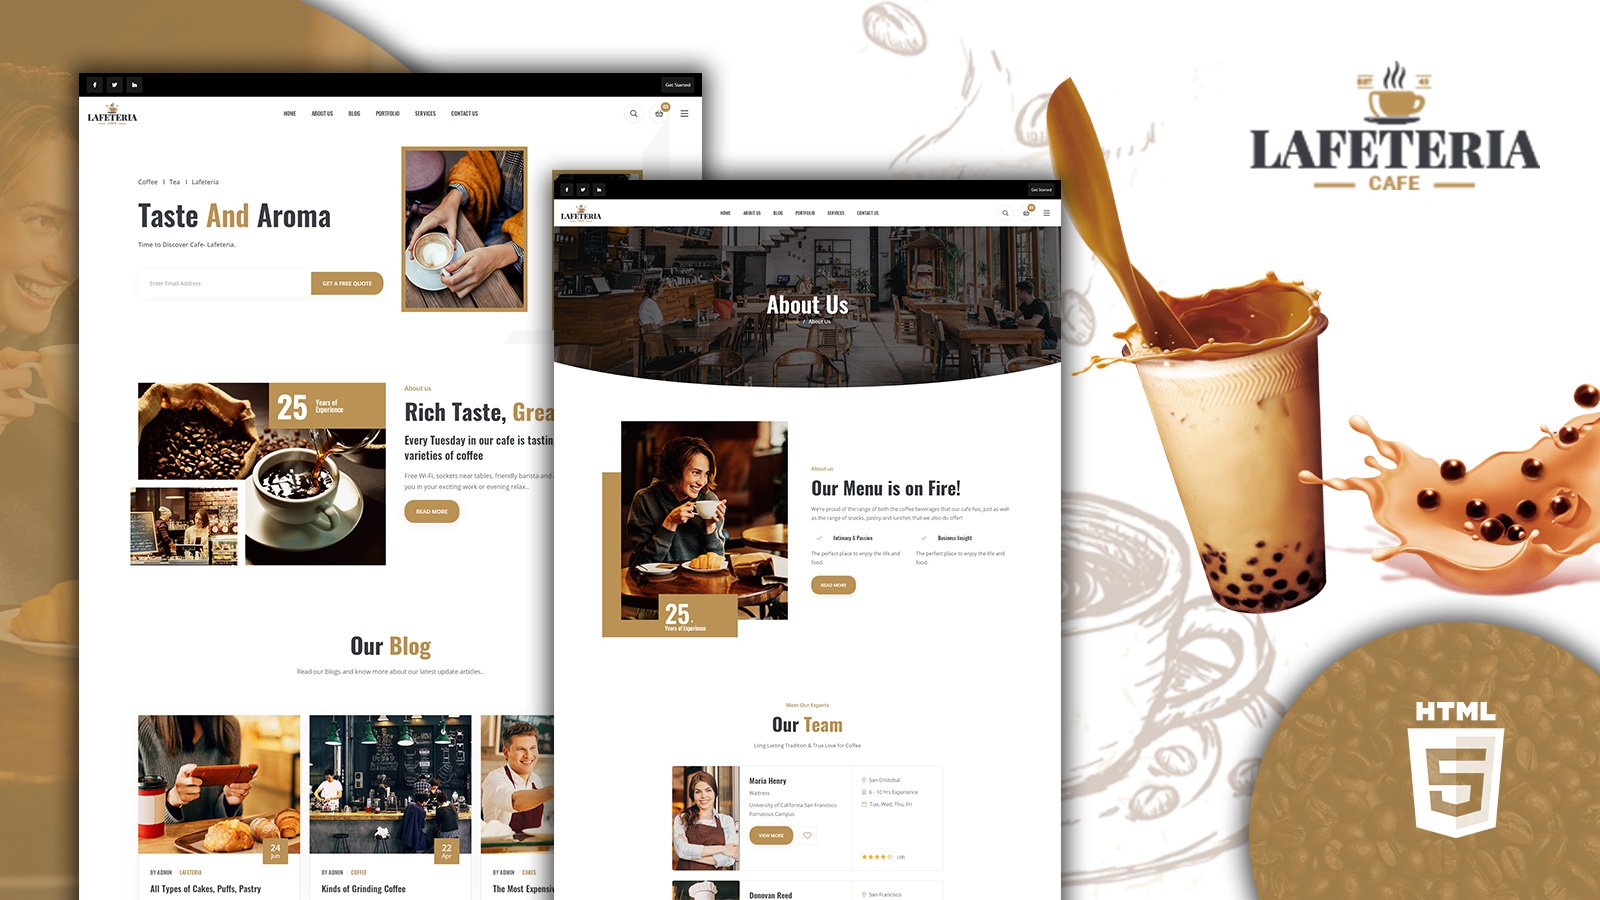 Lafeteria Cafe and Bar HTML5W Website Template